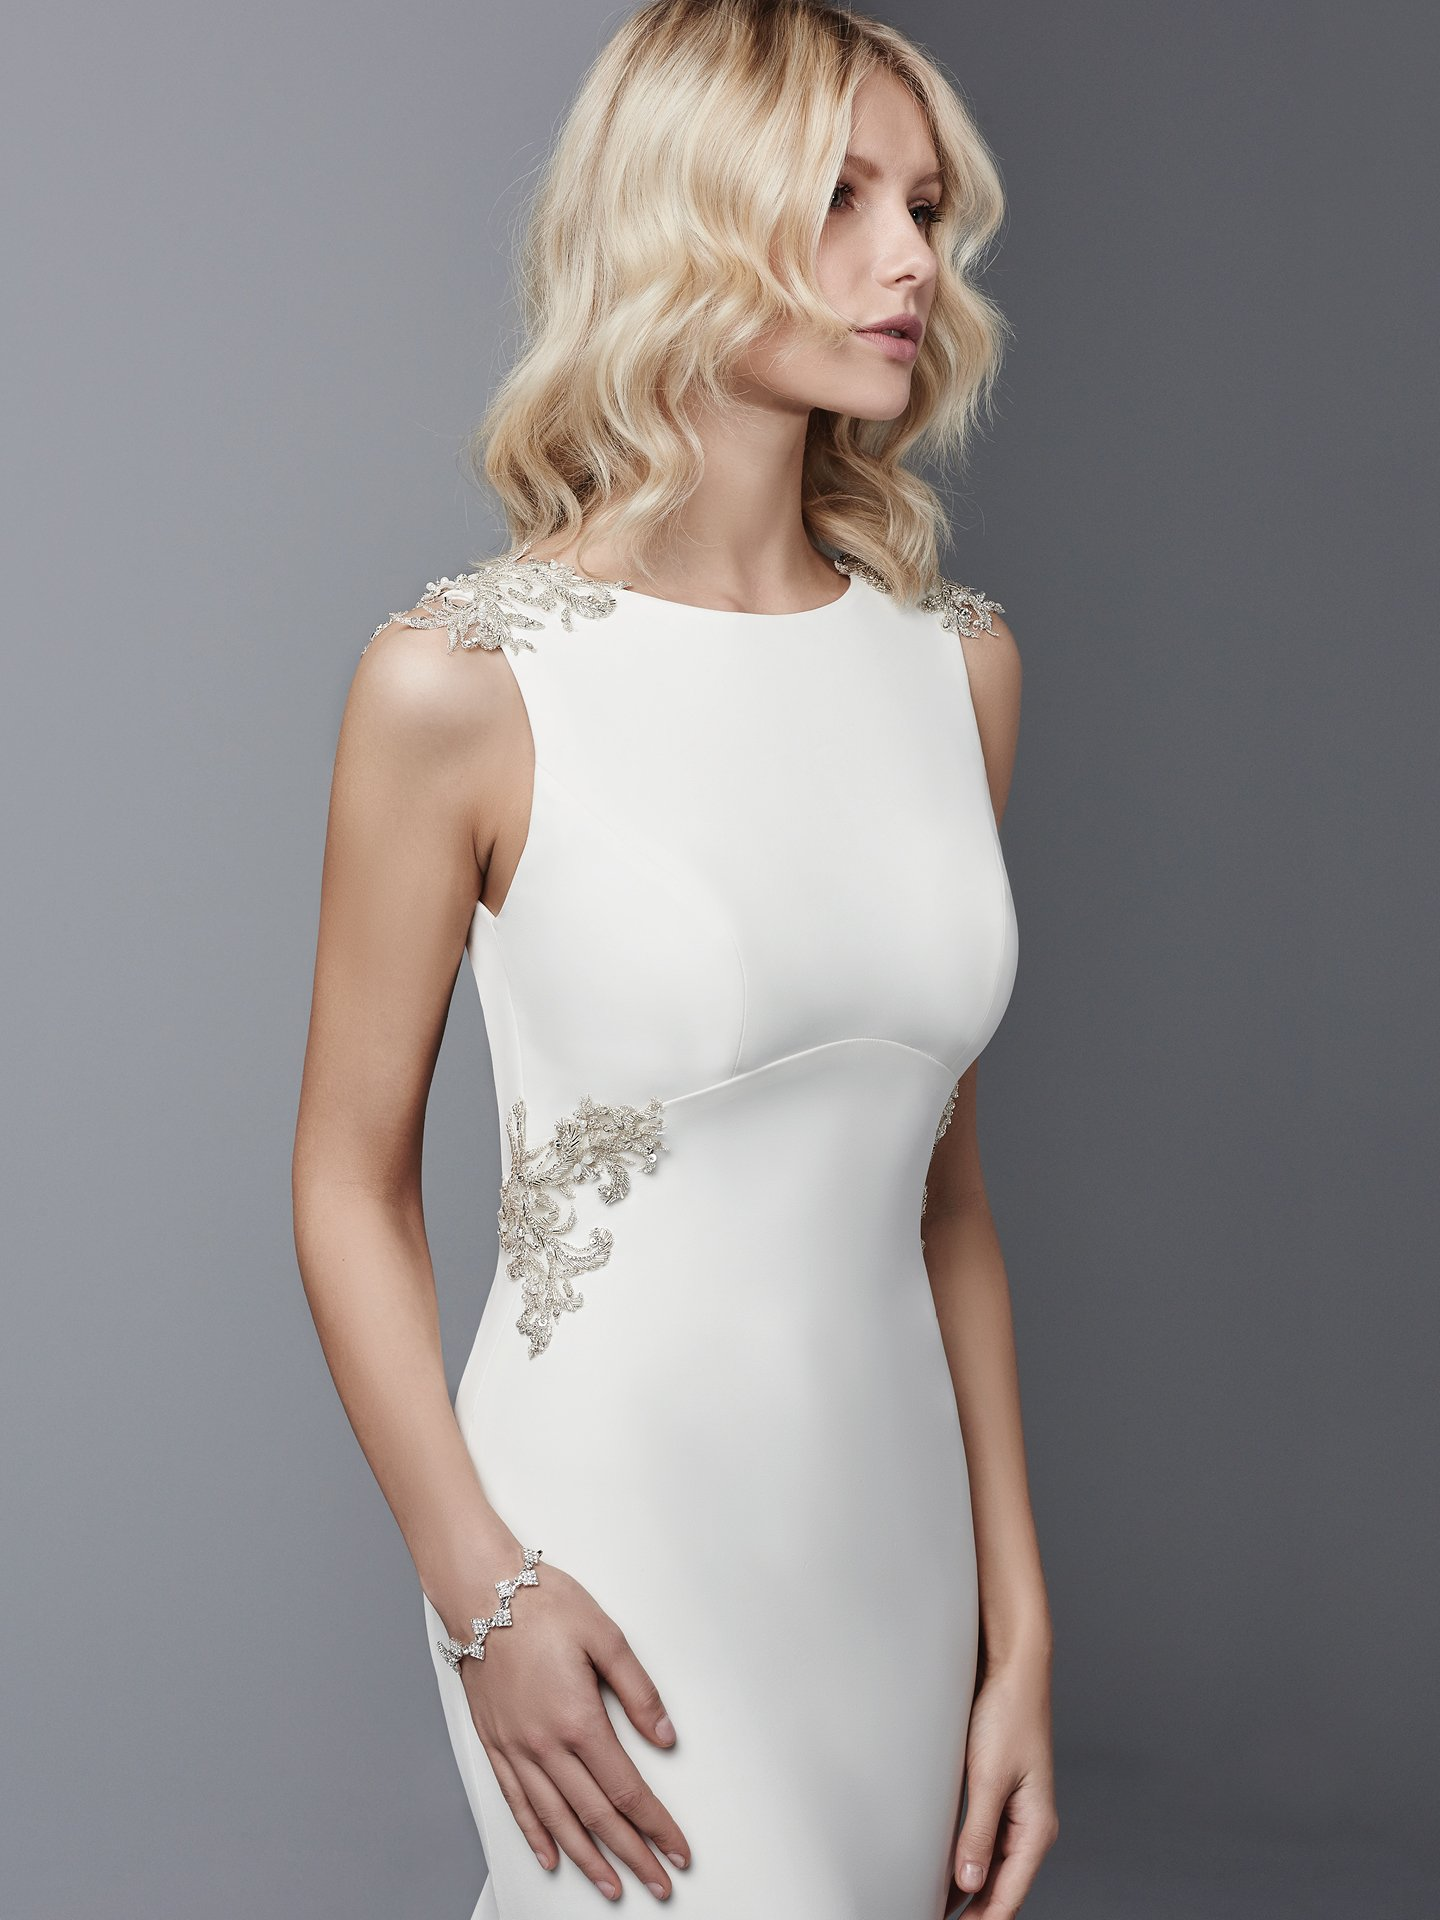 Satin wedding dress Noah by Sottero and Midgley